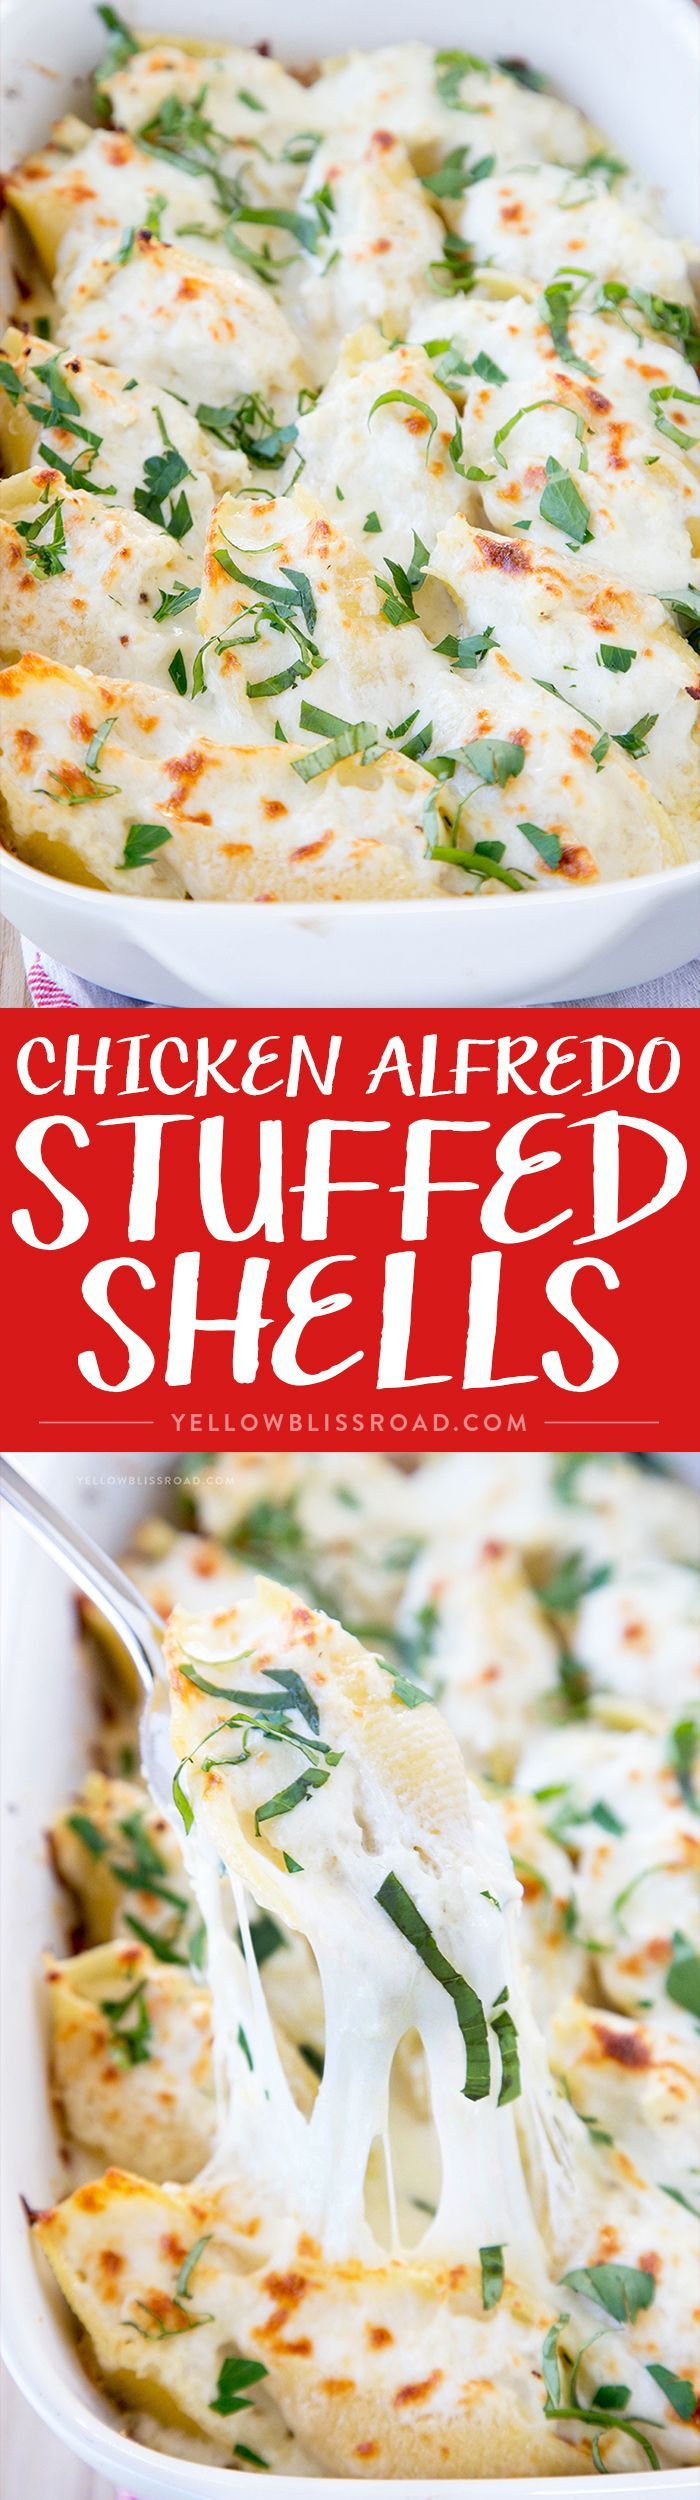 Chicken Alfredo Stuffed Shells - Creamy and Rich Pasta dish with a homemade simple Alfredo sauce, chicken Italian cheeses and Ricotta: